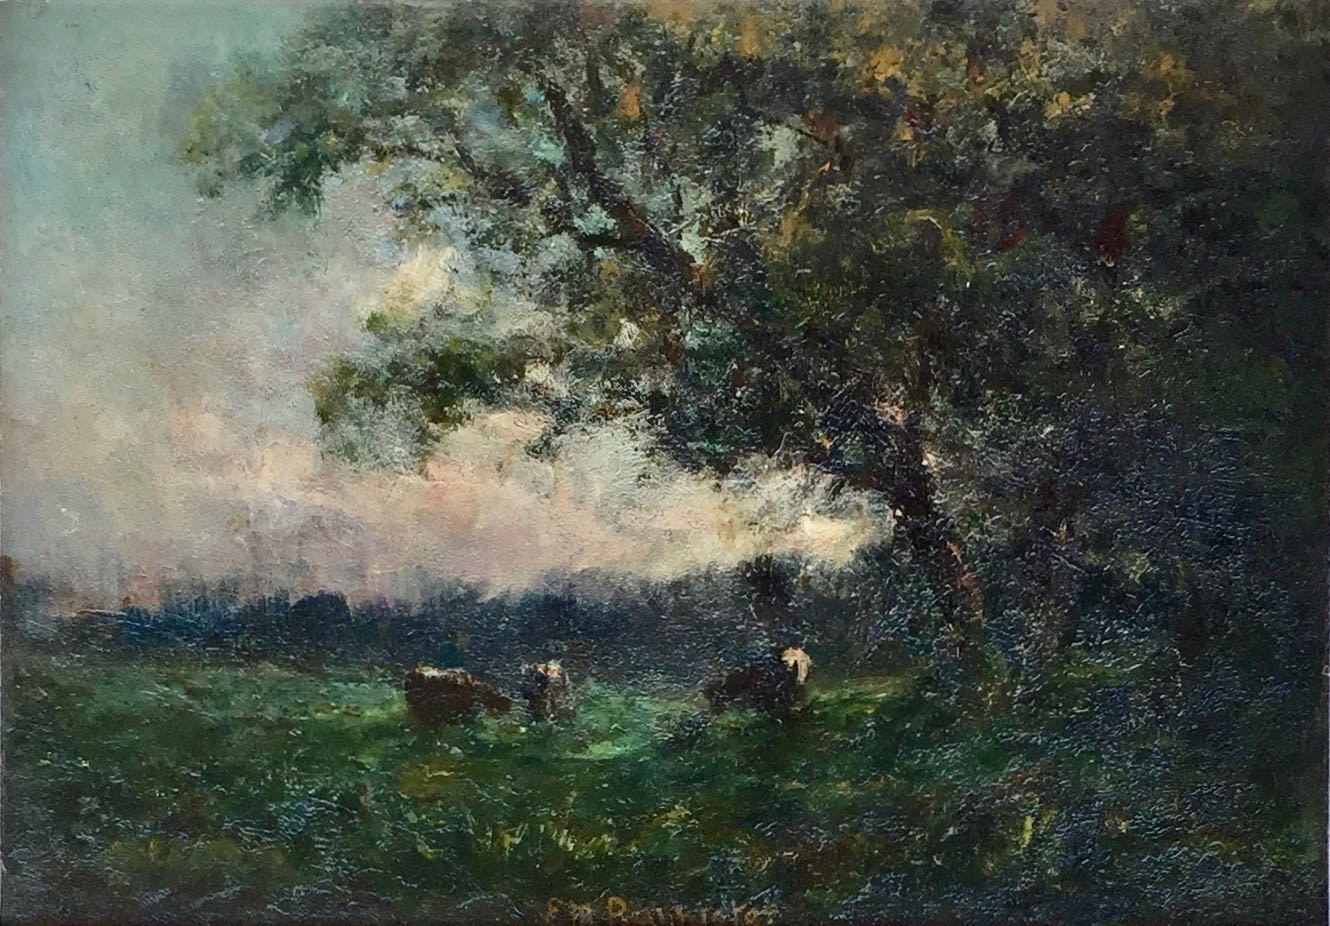 Edward Mitchell Bannister, Landscape 3 Cows with trees on right, 1888